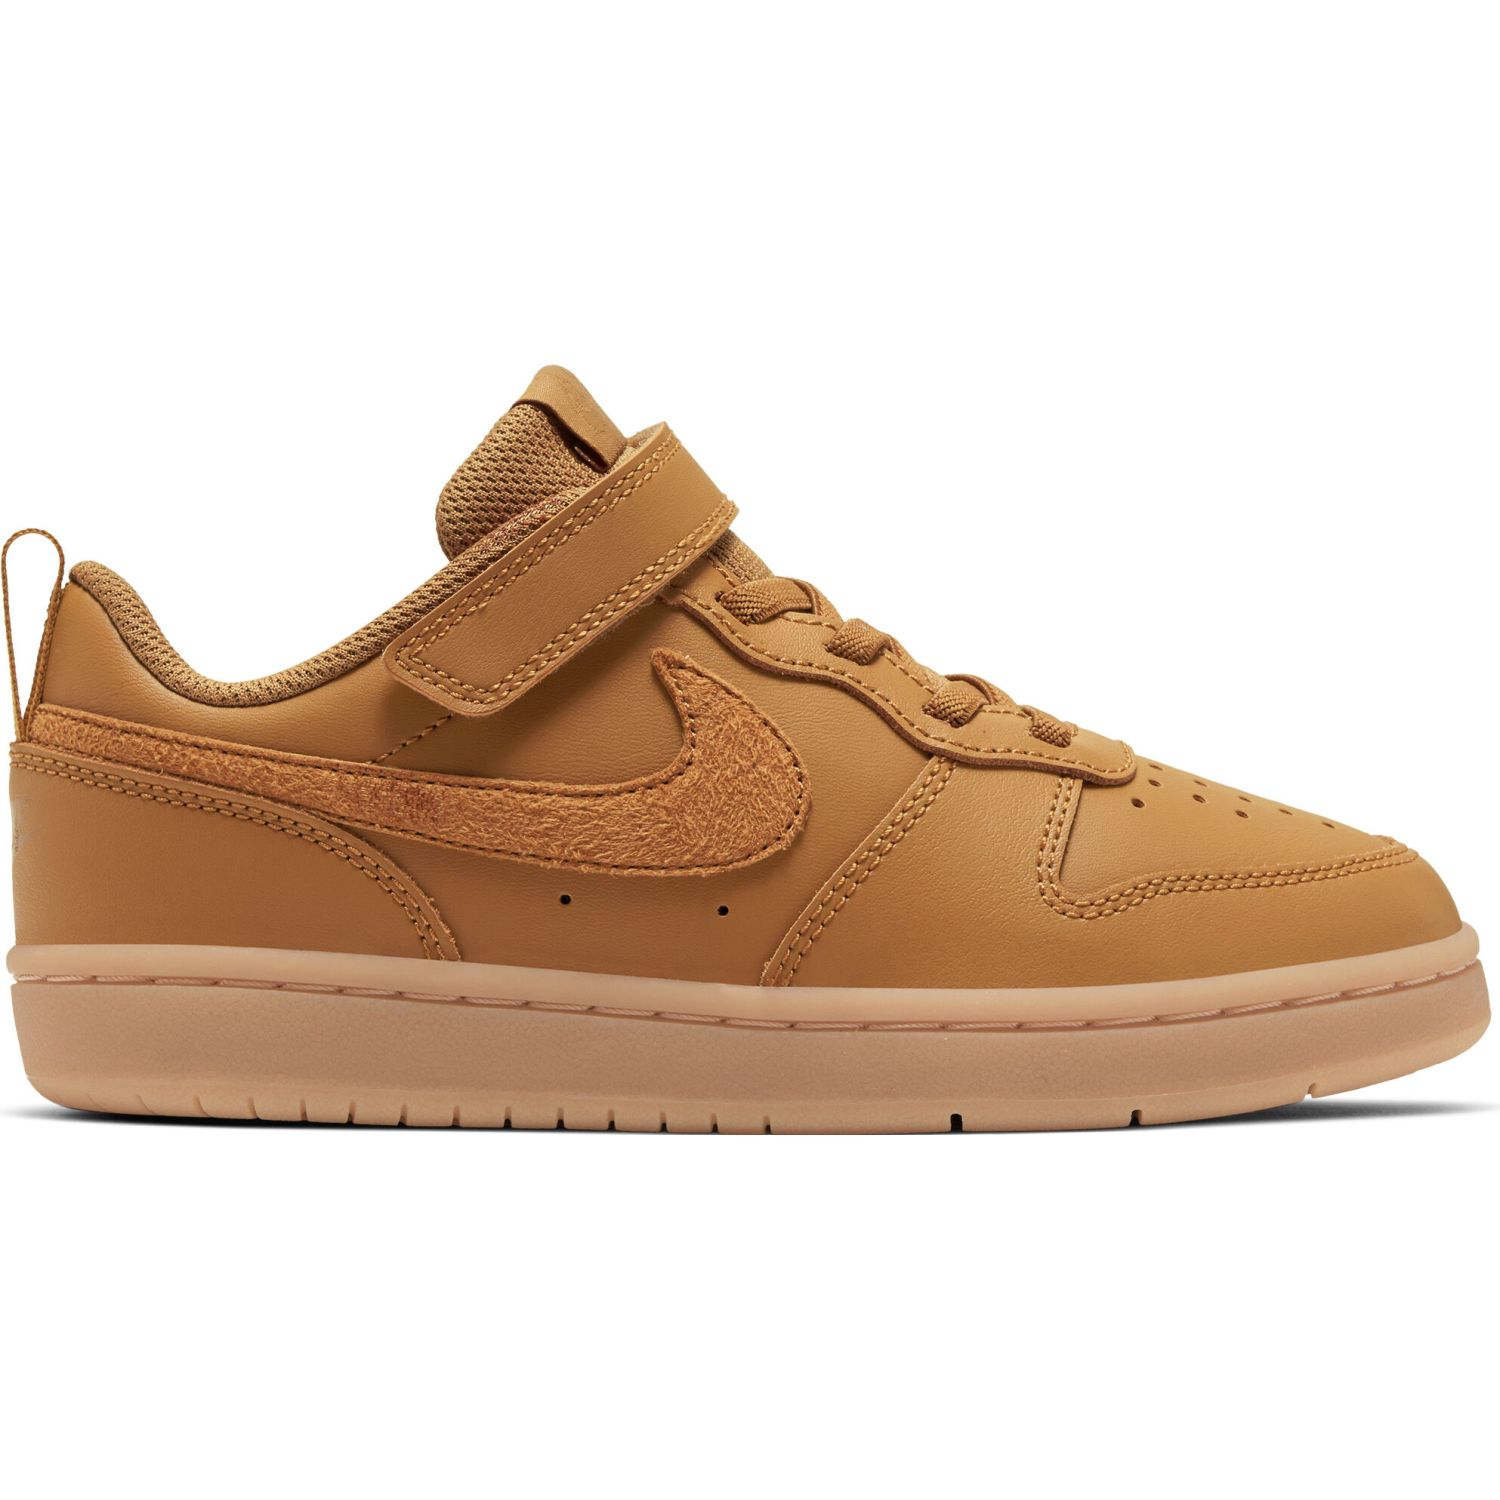 Nike COURT BOROUGH LOW 2 BP Naranjo Muchachos